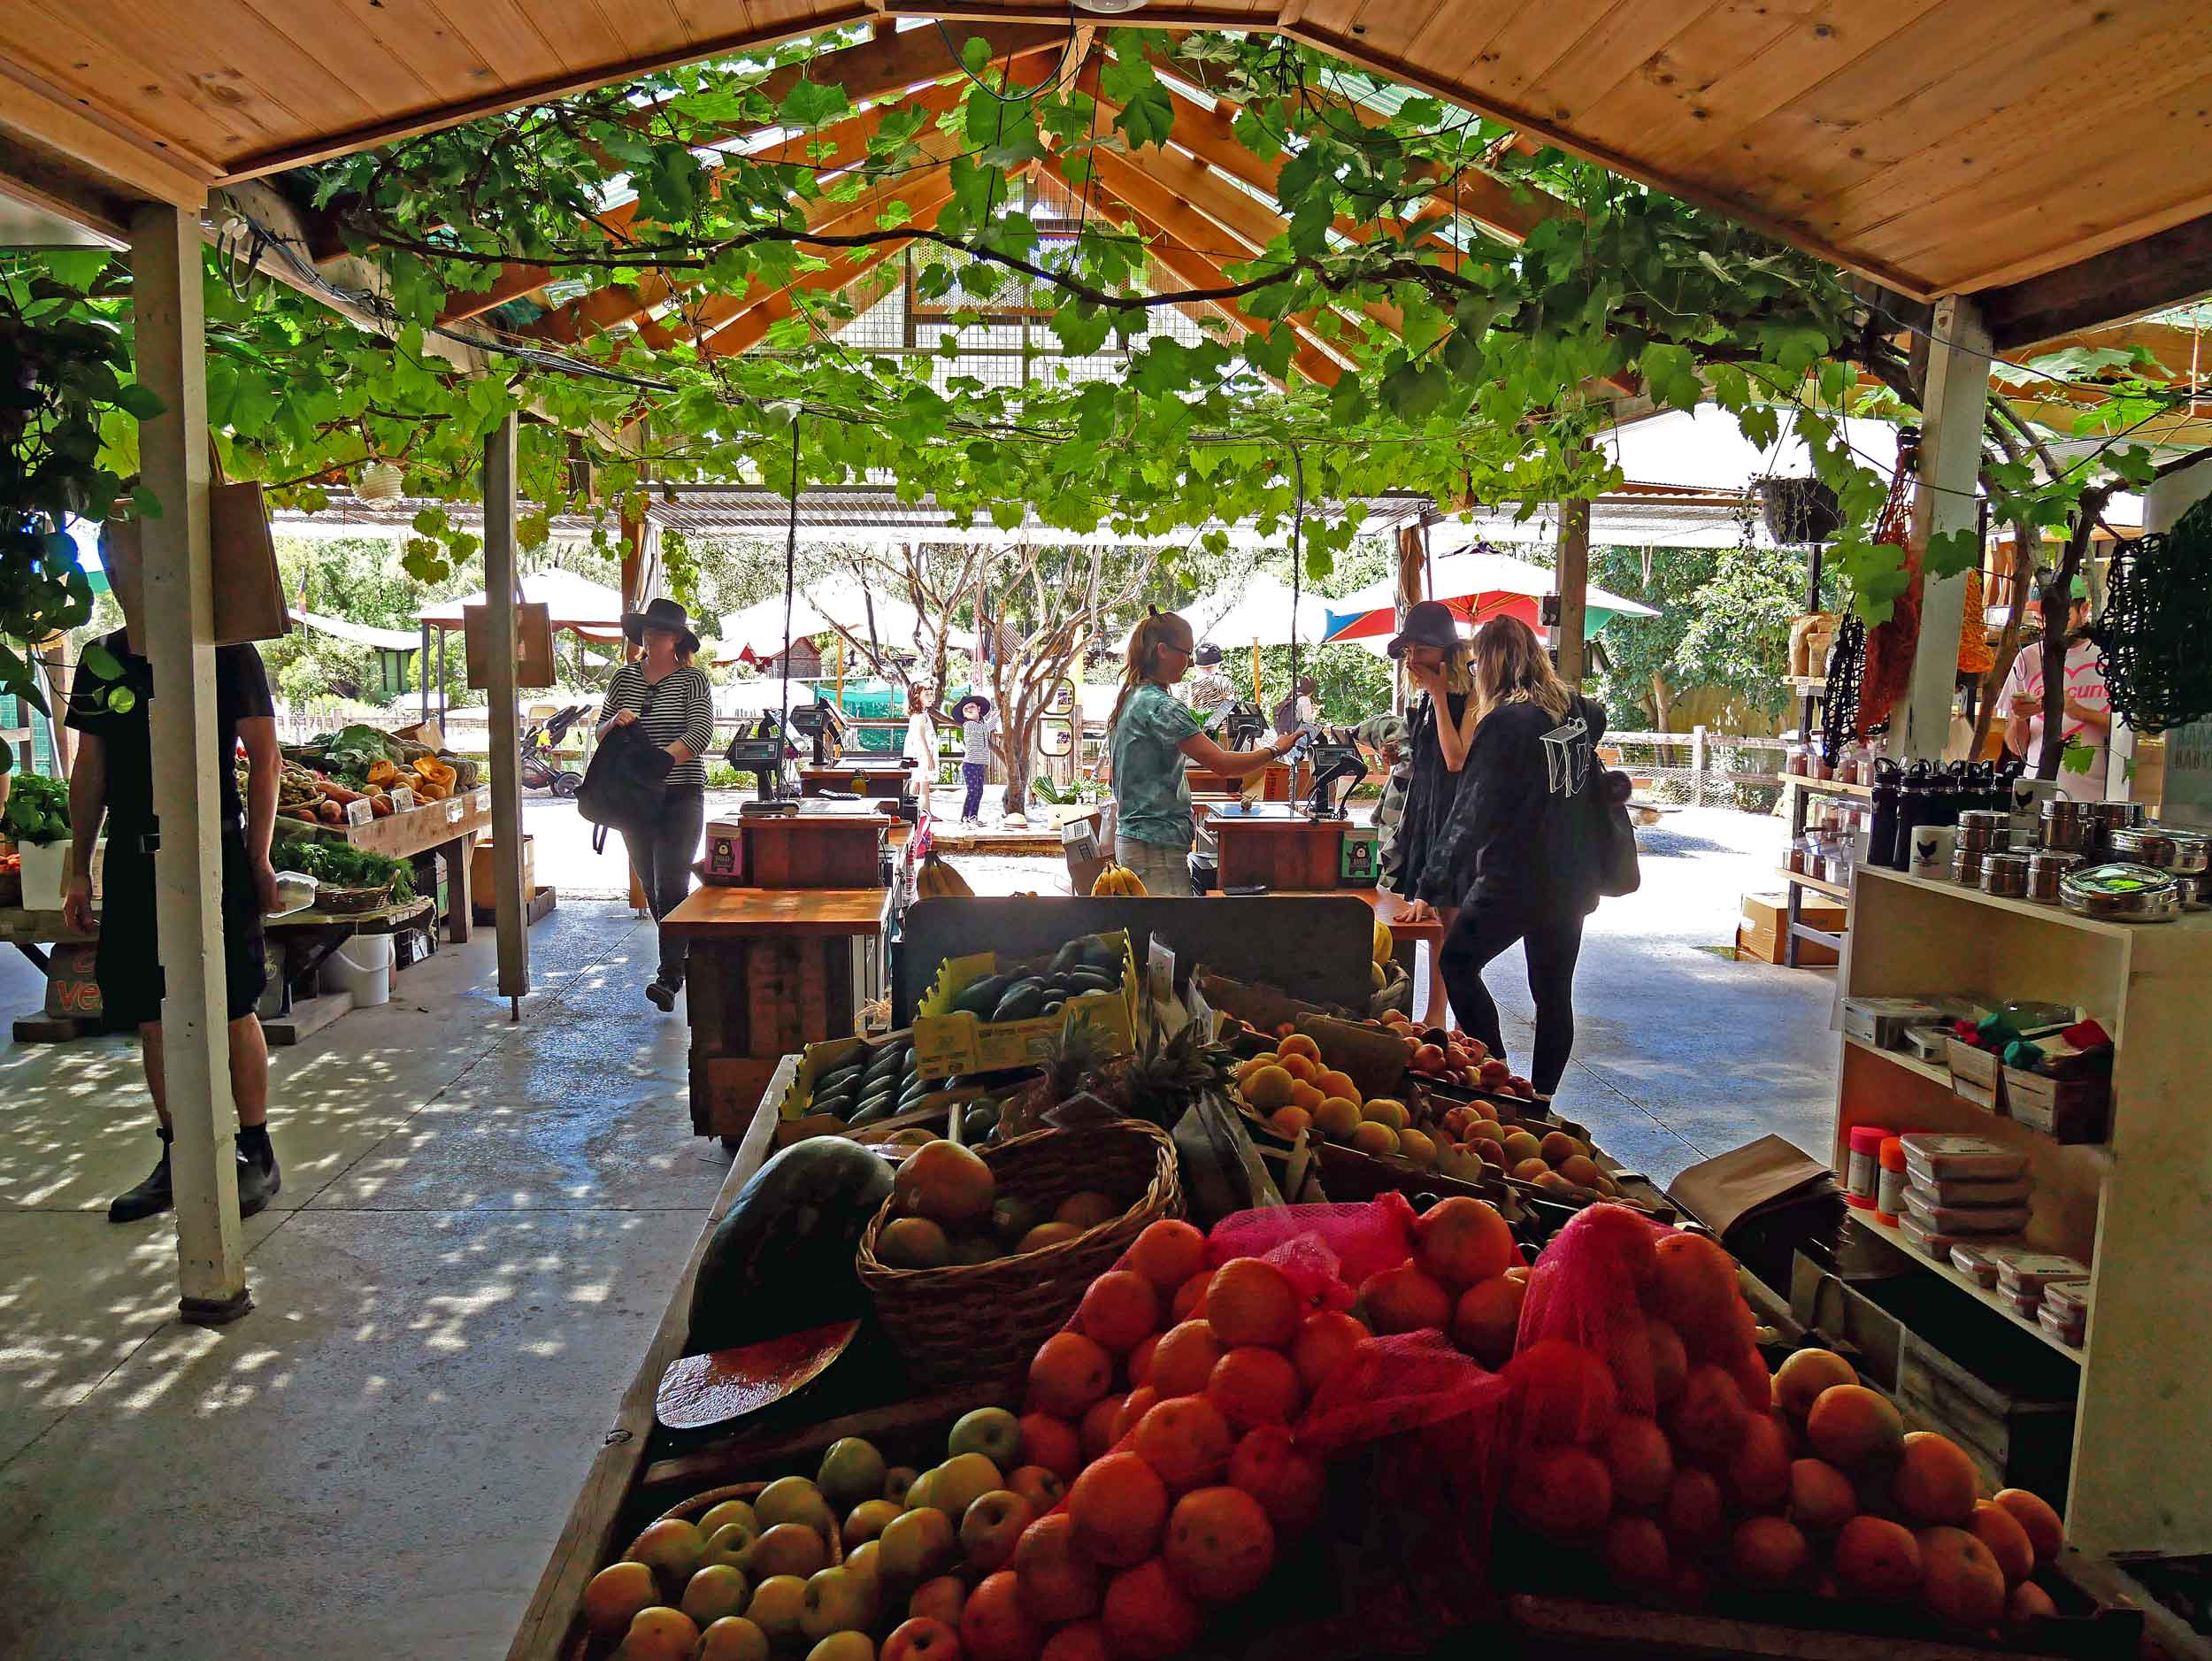 CERES offers a delicious spread of locally sourced fare on offer at their market (Jan 26).